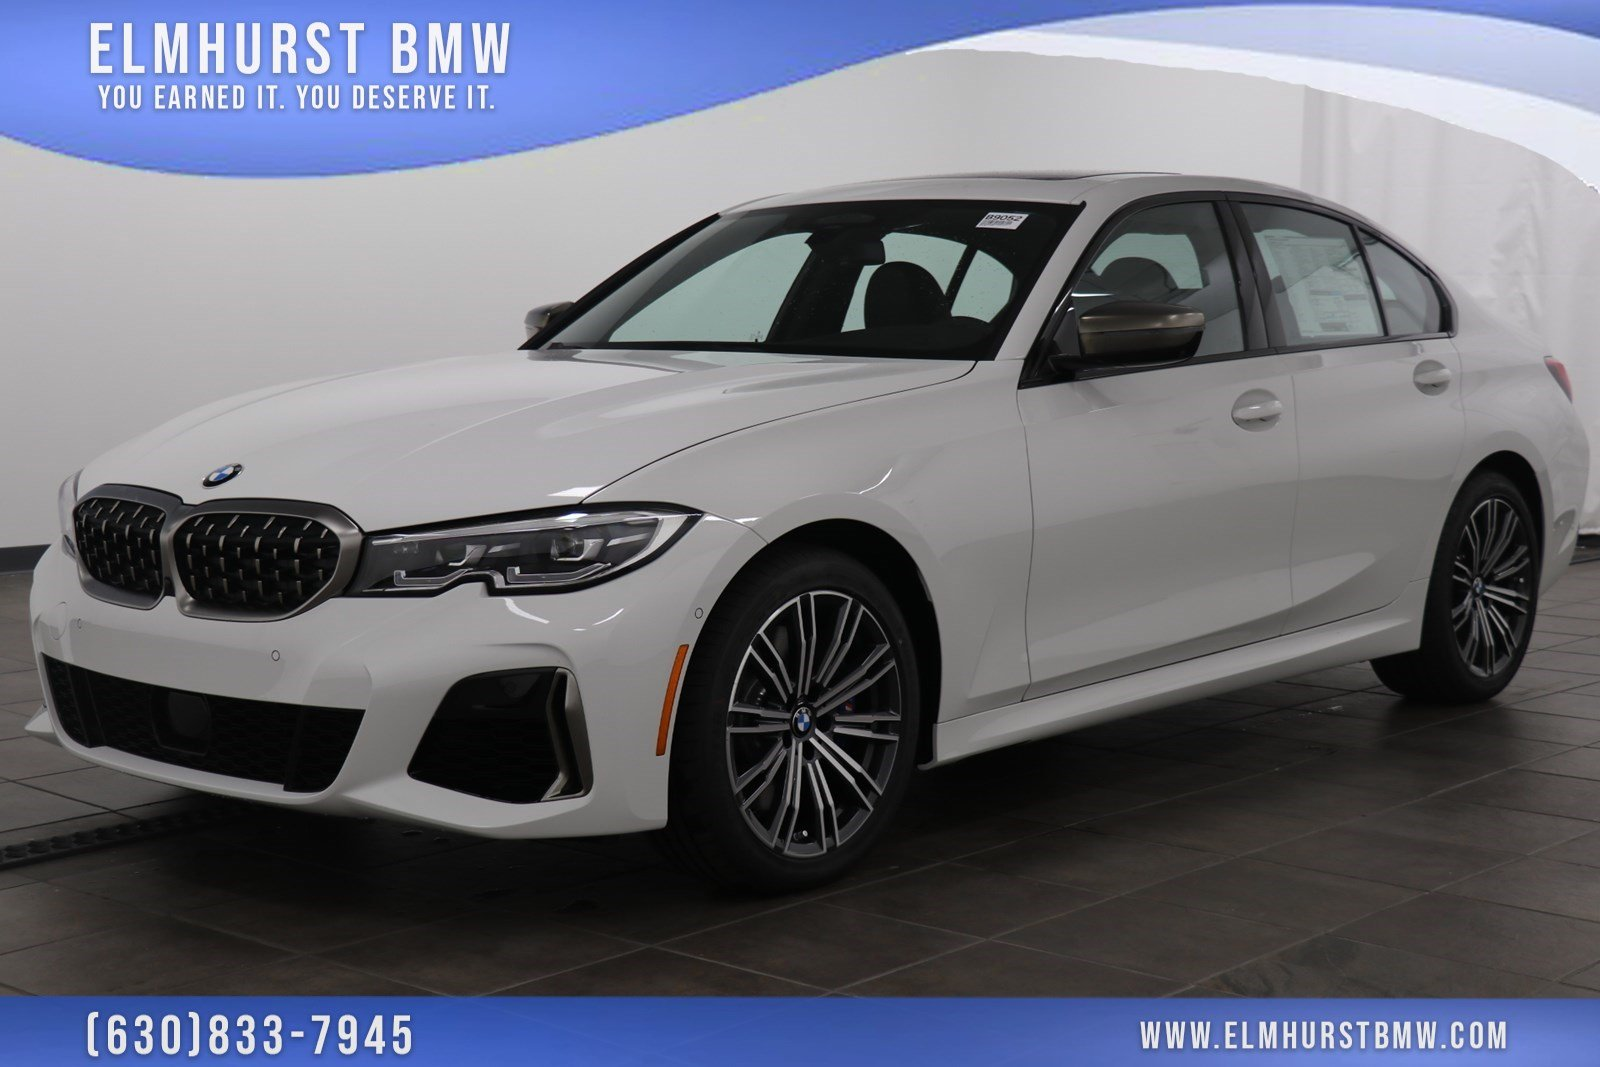 New 2020 Bmw 3 Series M340i Xdrive 4dr Car In Elmhurst B9052